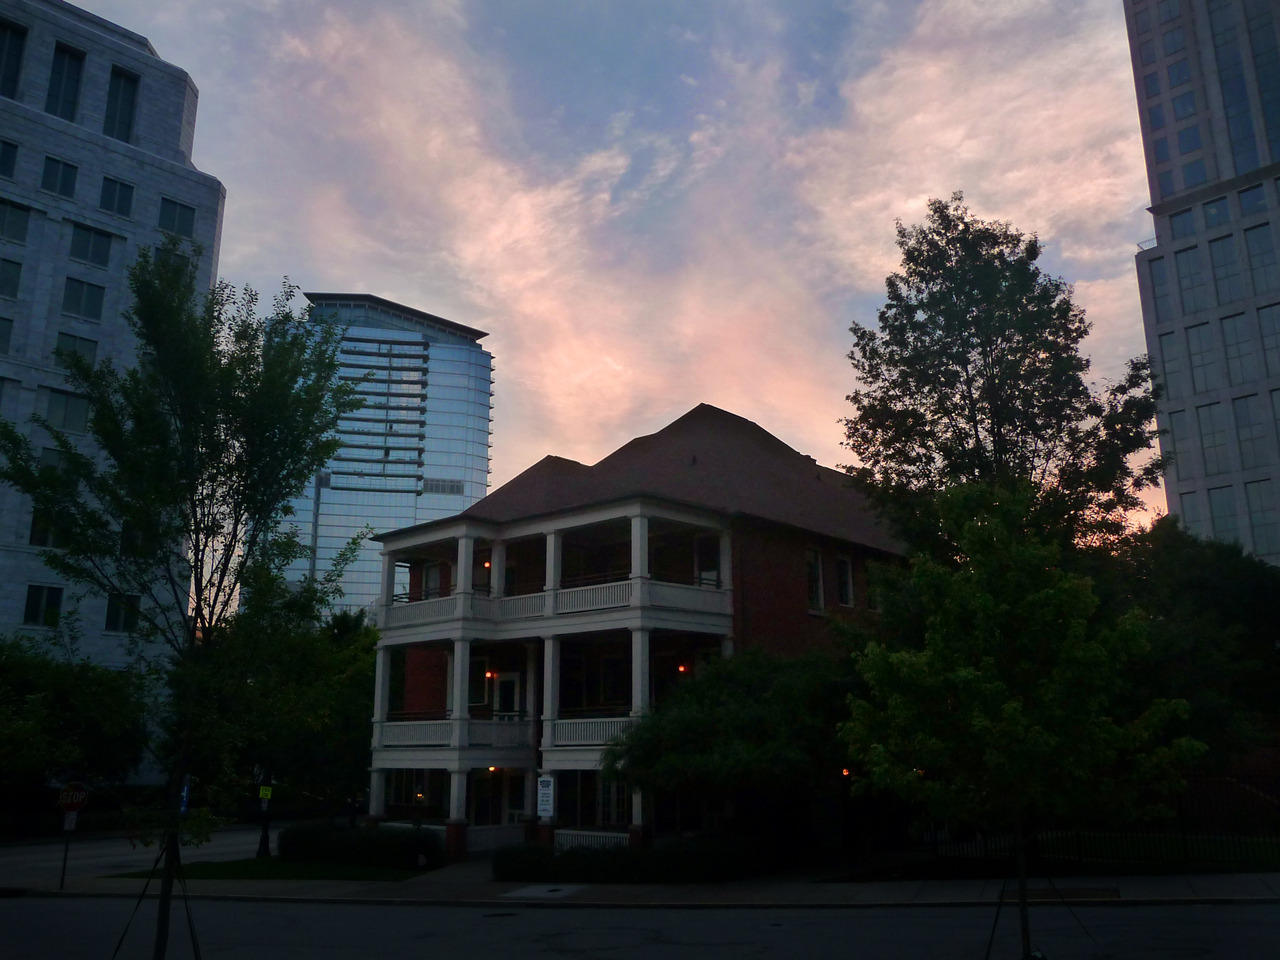 Sunrise over Margaret Mitchell House, the home where Gone With the Wind was written.